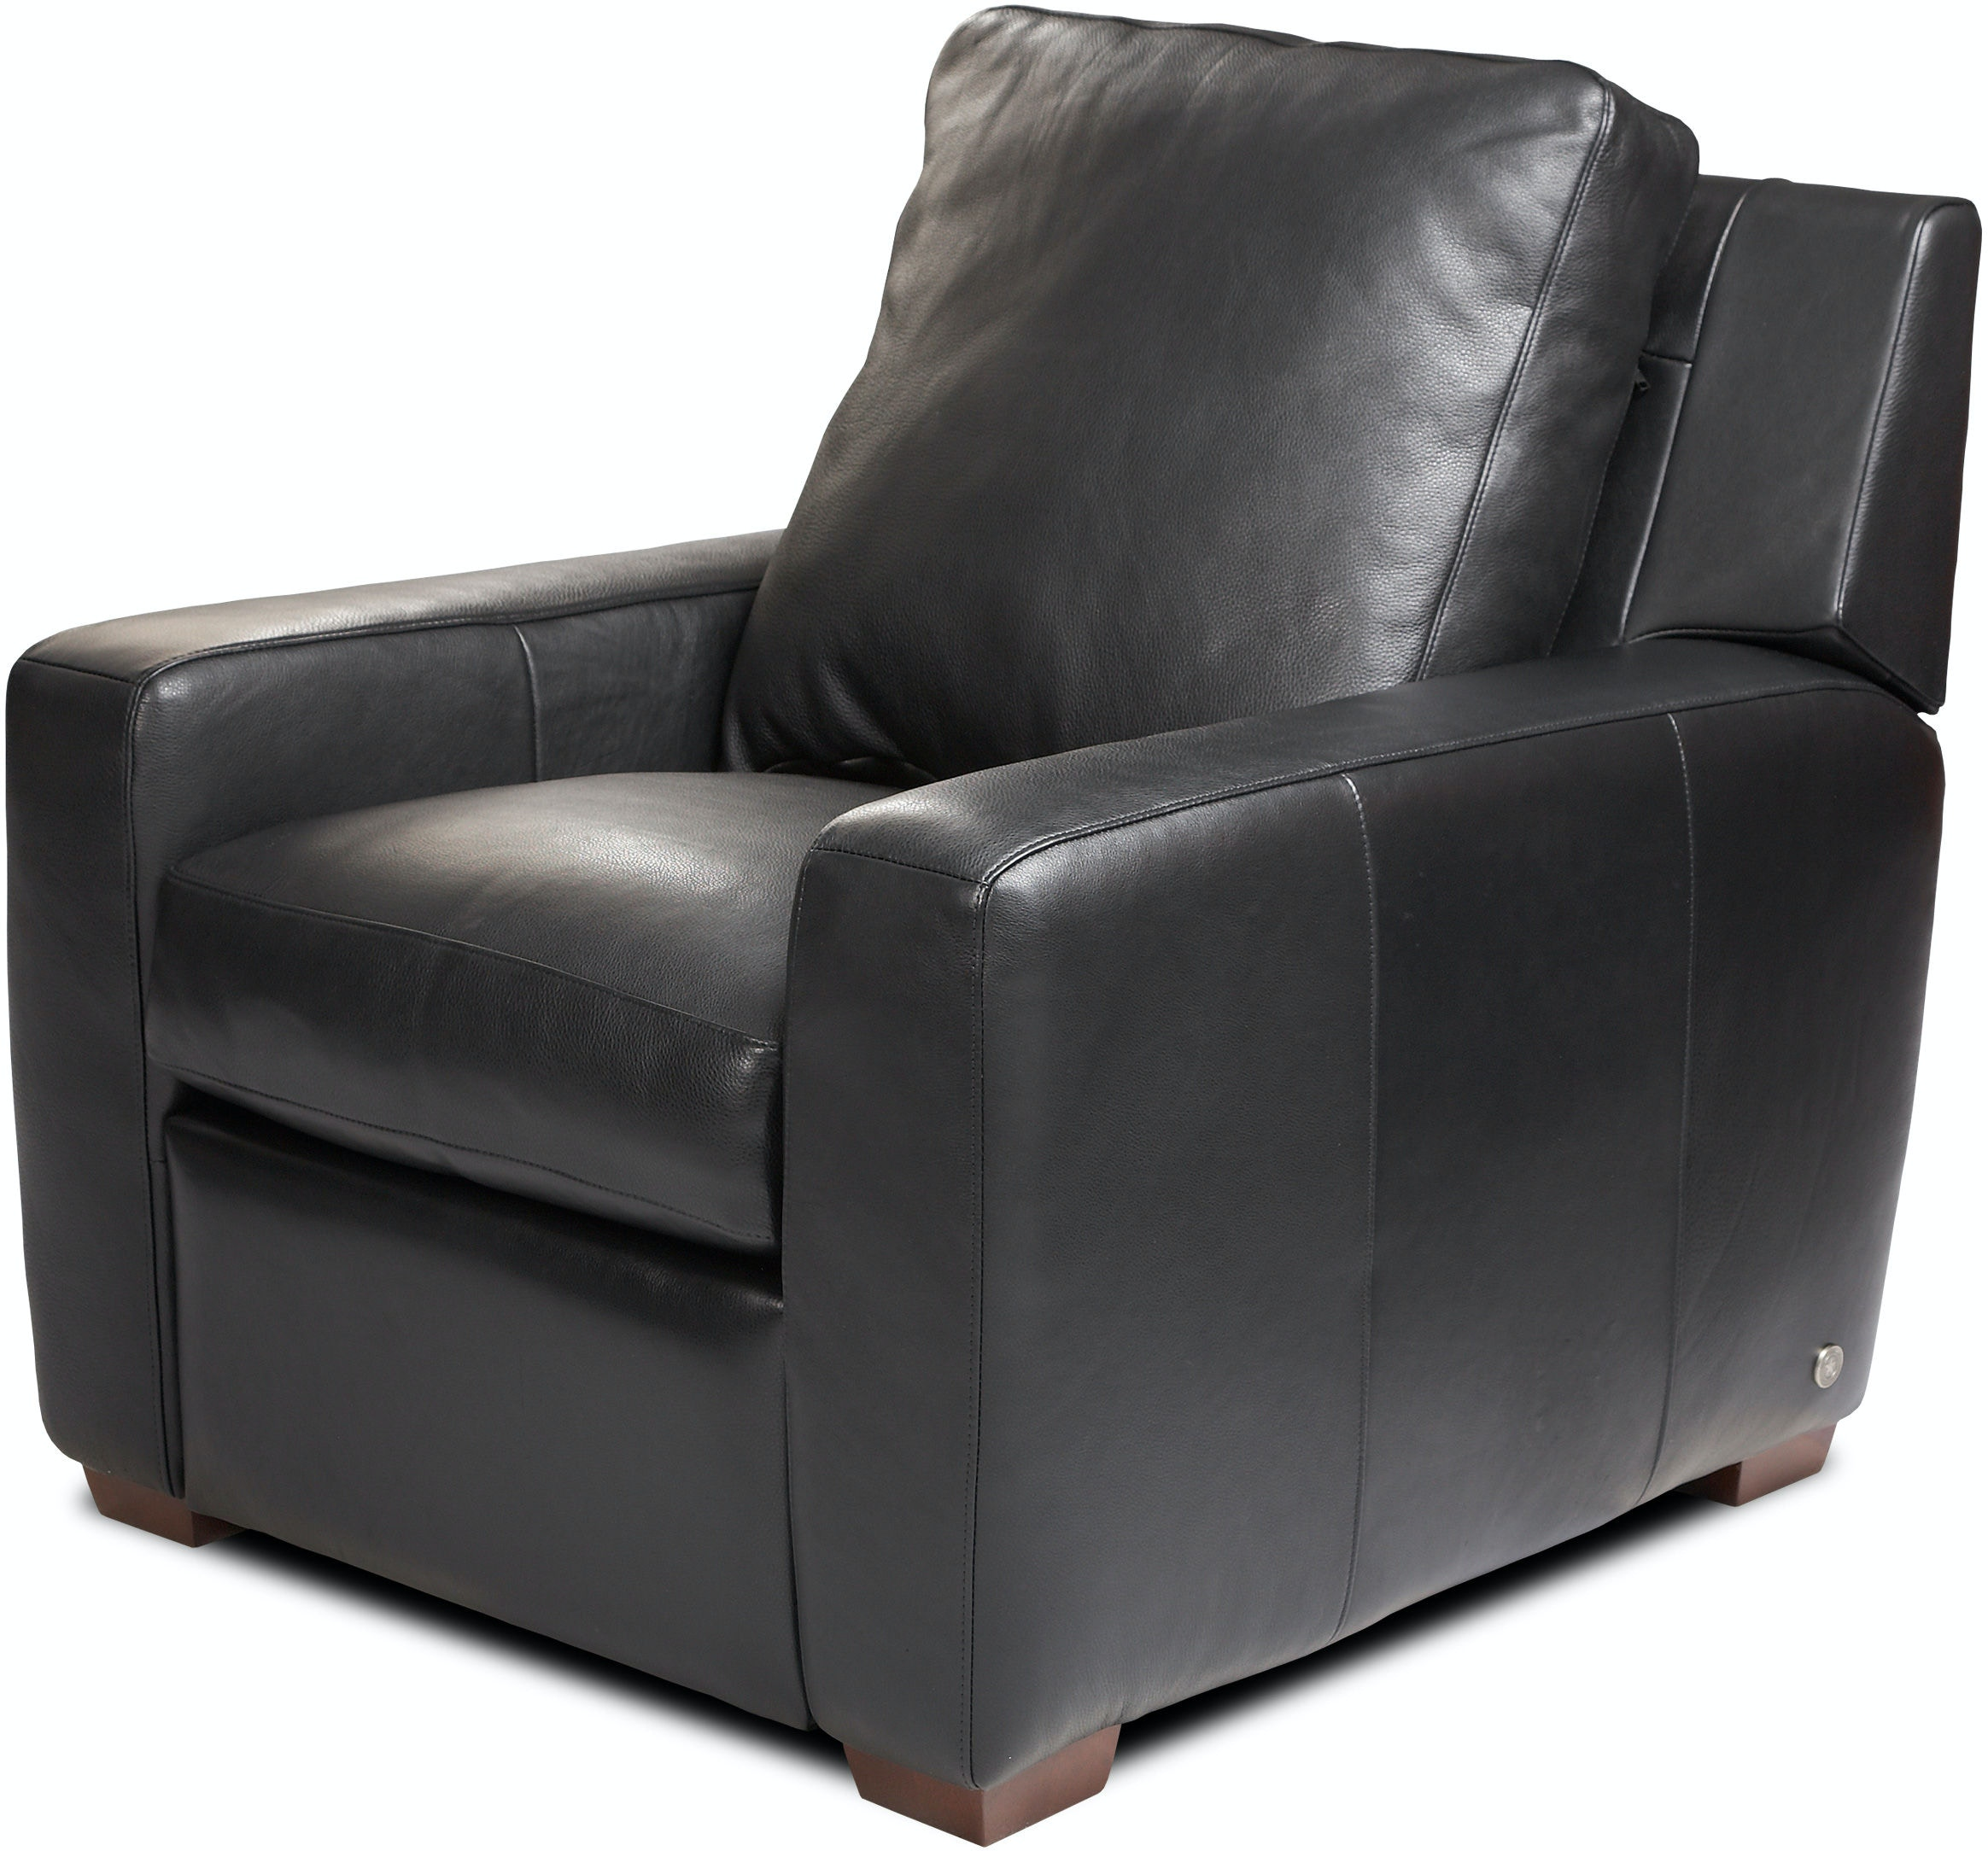 American Leather Living Room Recliner Chair Lis Rec St